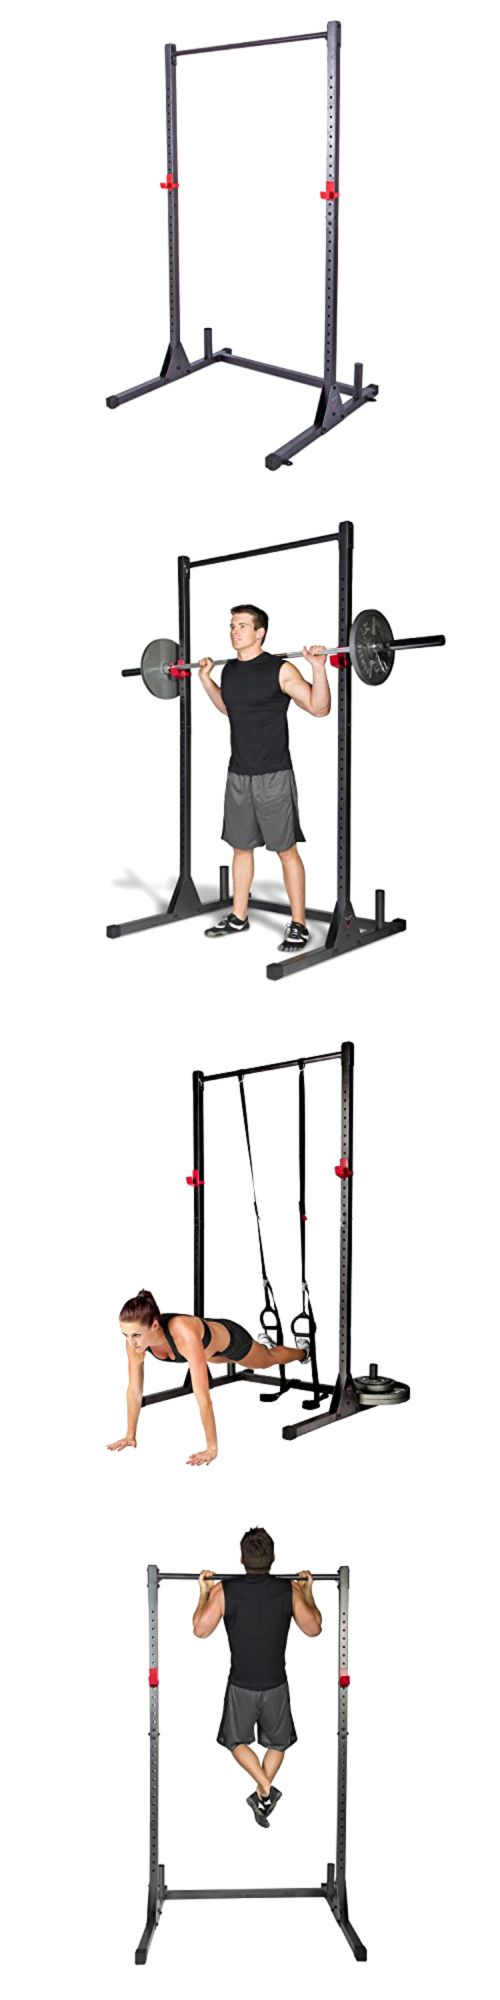 Pull Up Bars 179816: Home Gym Pull Up Bar Power Rack Exercise Stand Body Building Workout Fitness New BUY IT NOW ONLY: $110.92